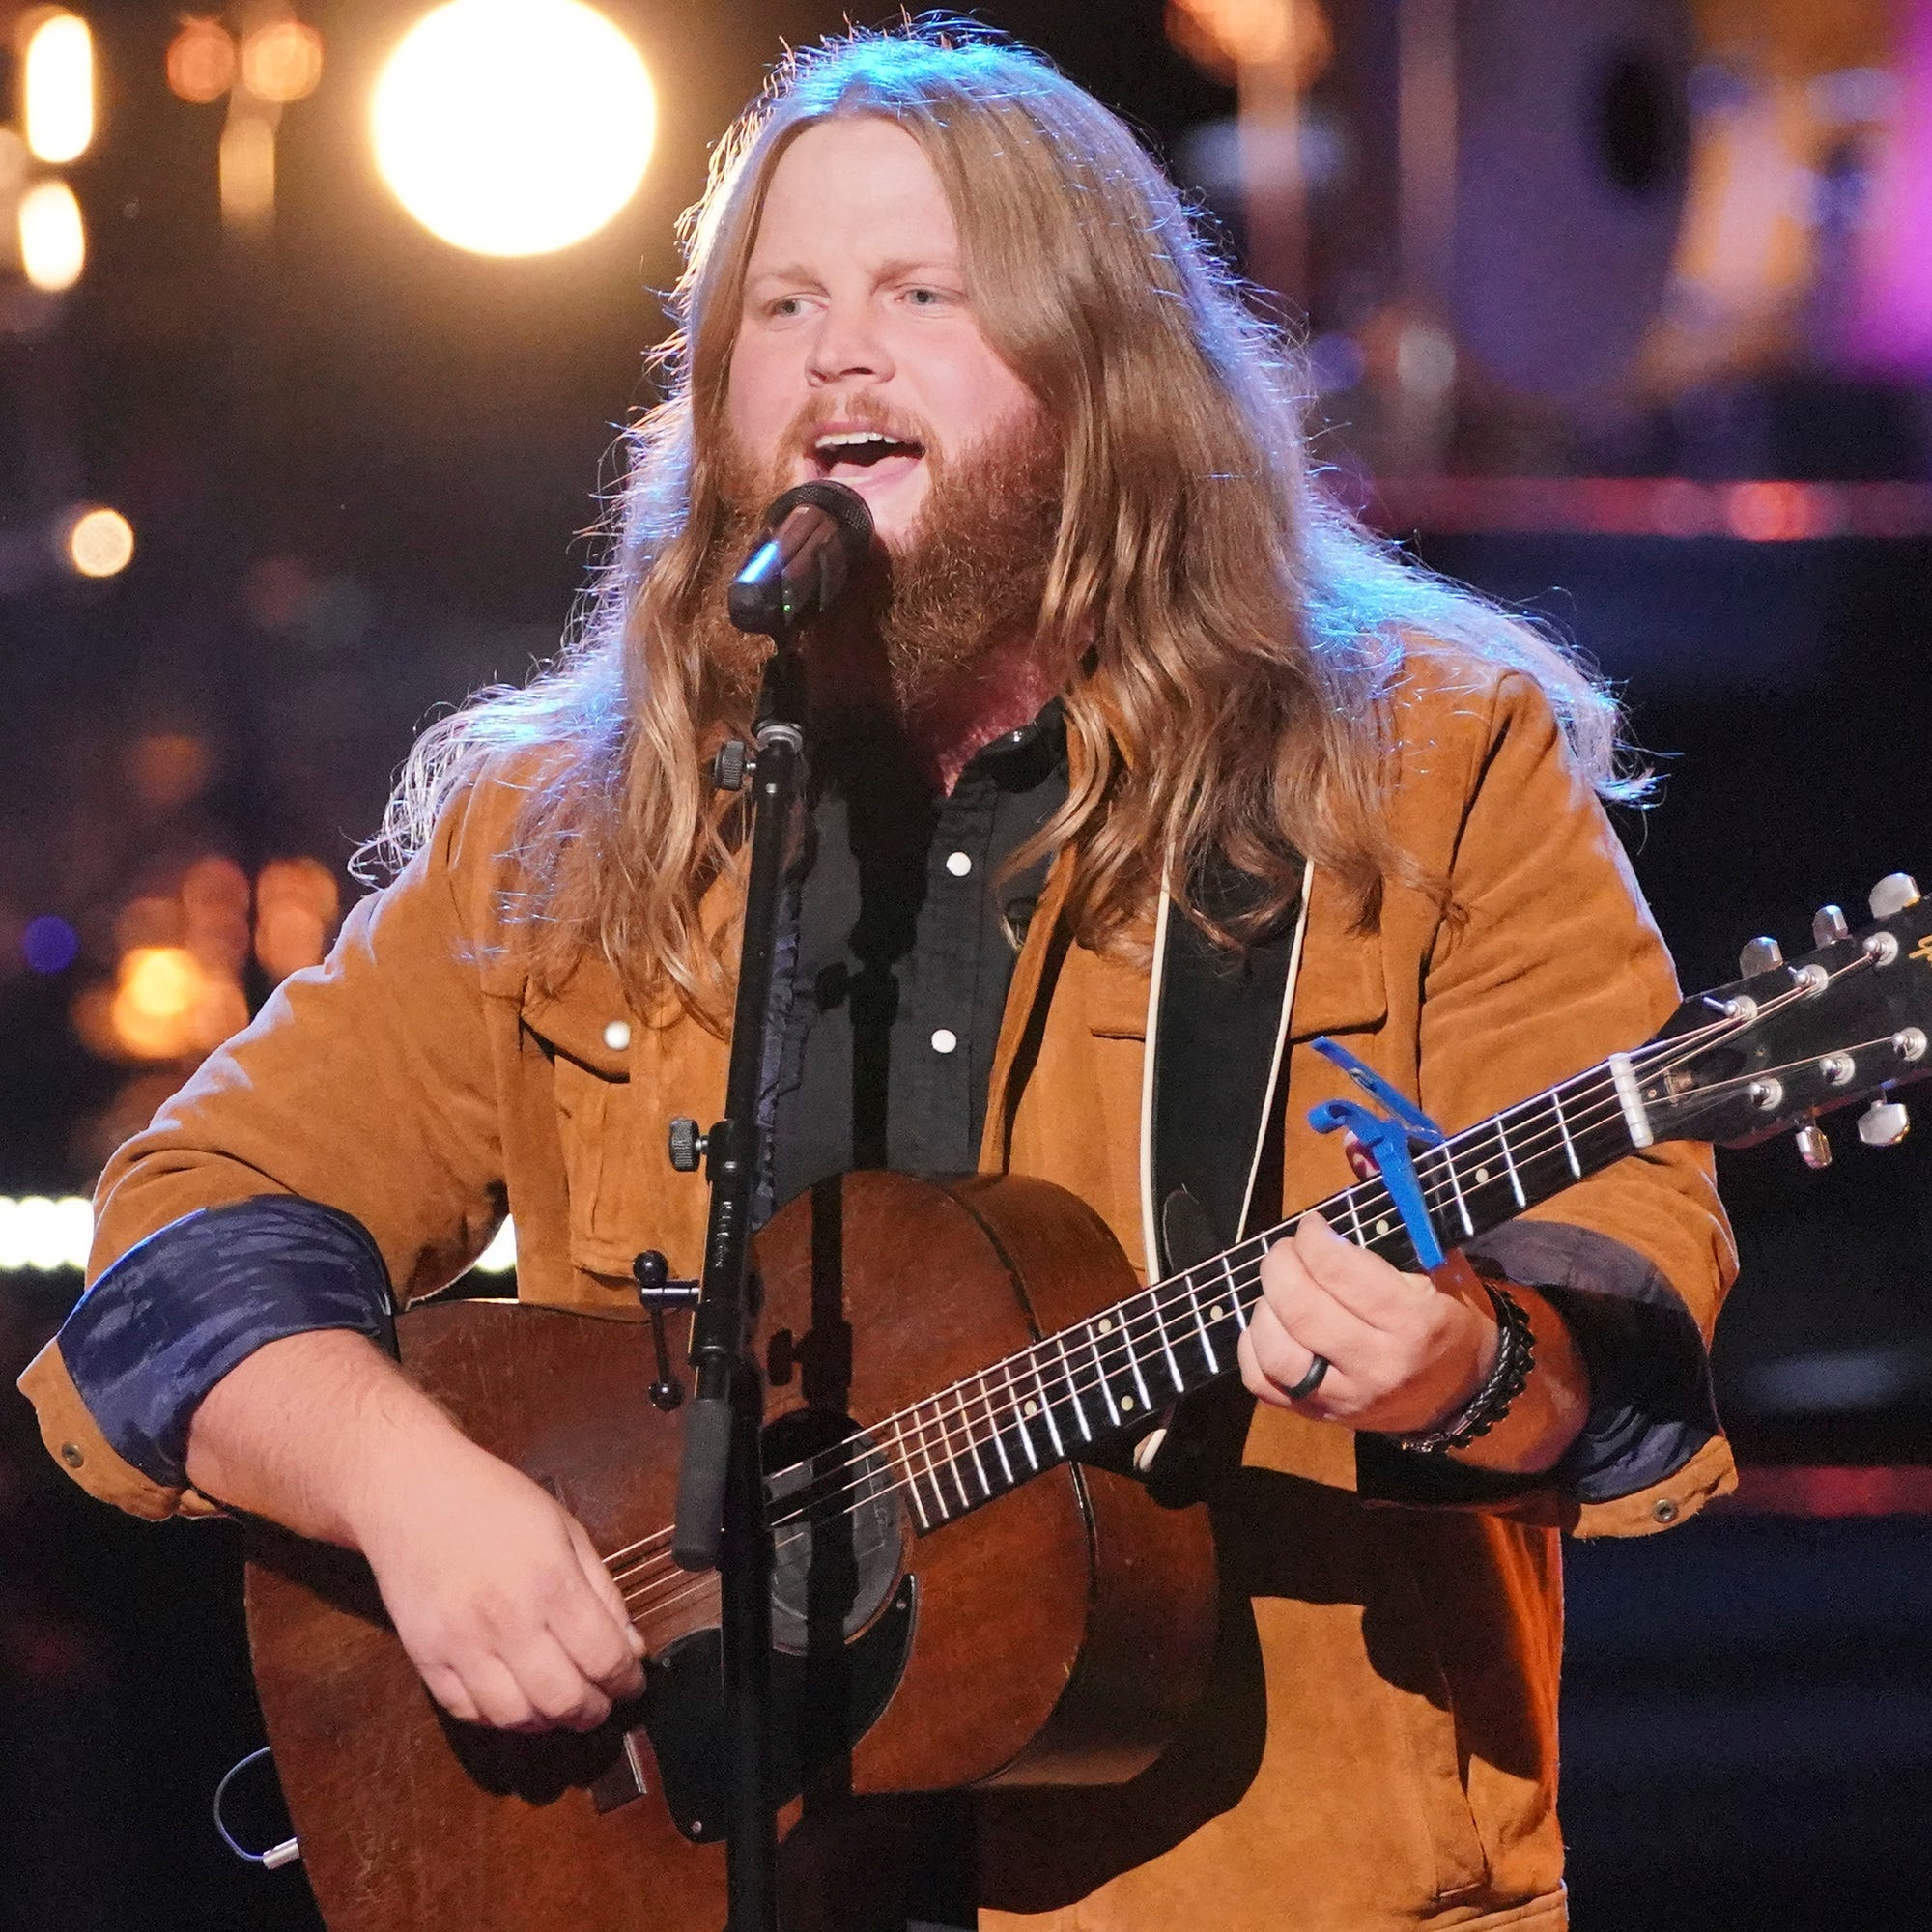 With small-town Wisconsin charm, and talent, Chris Kroeze is a rising star on 'The Voice'